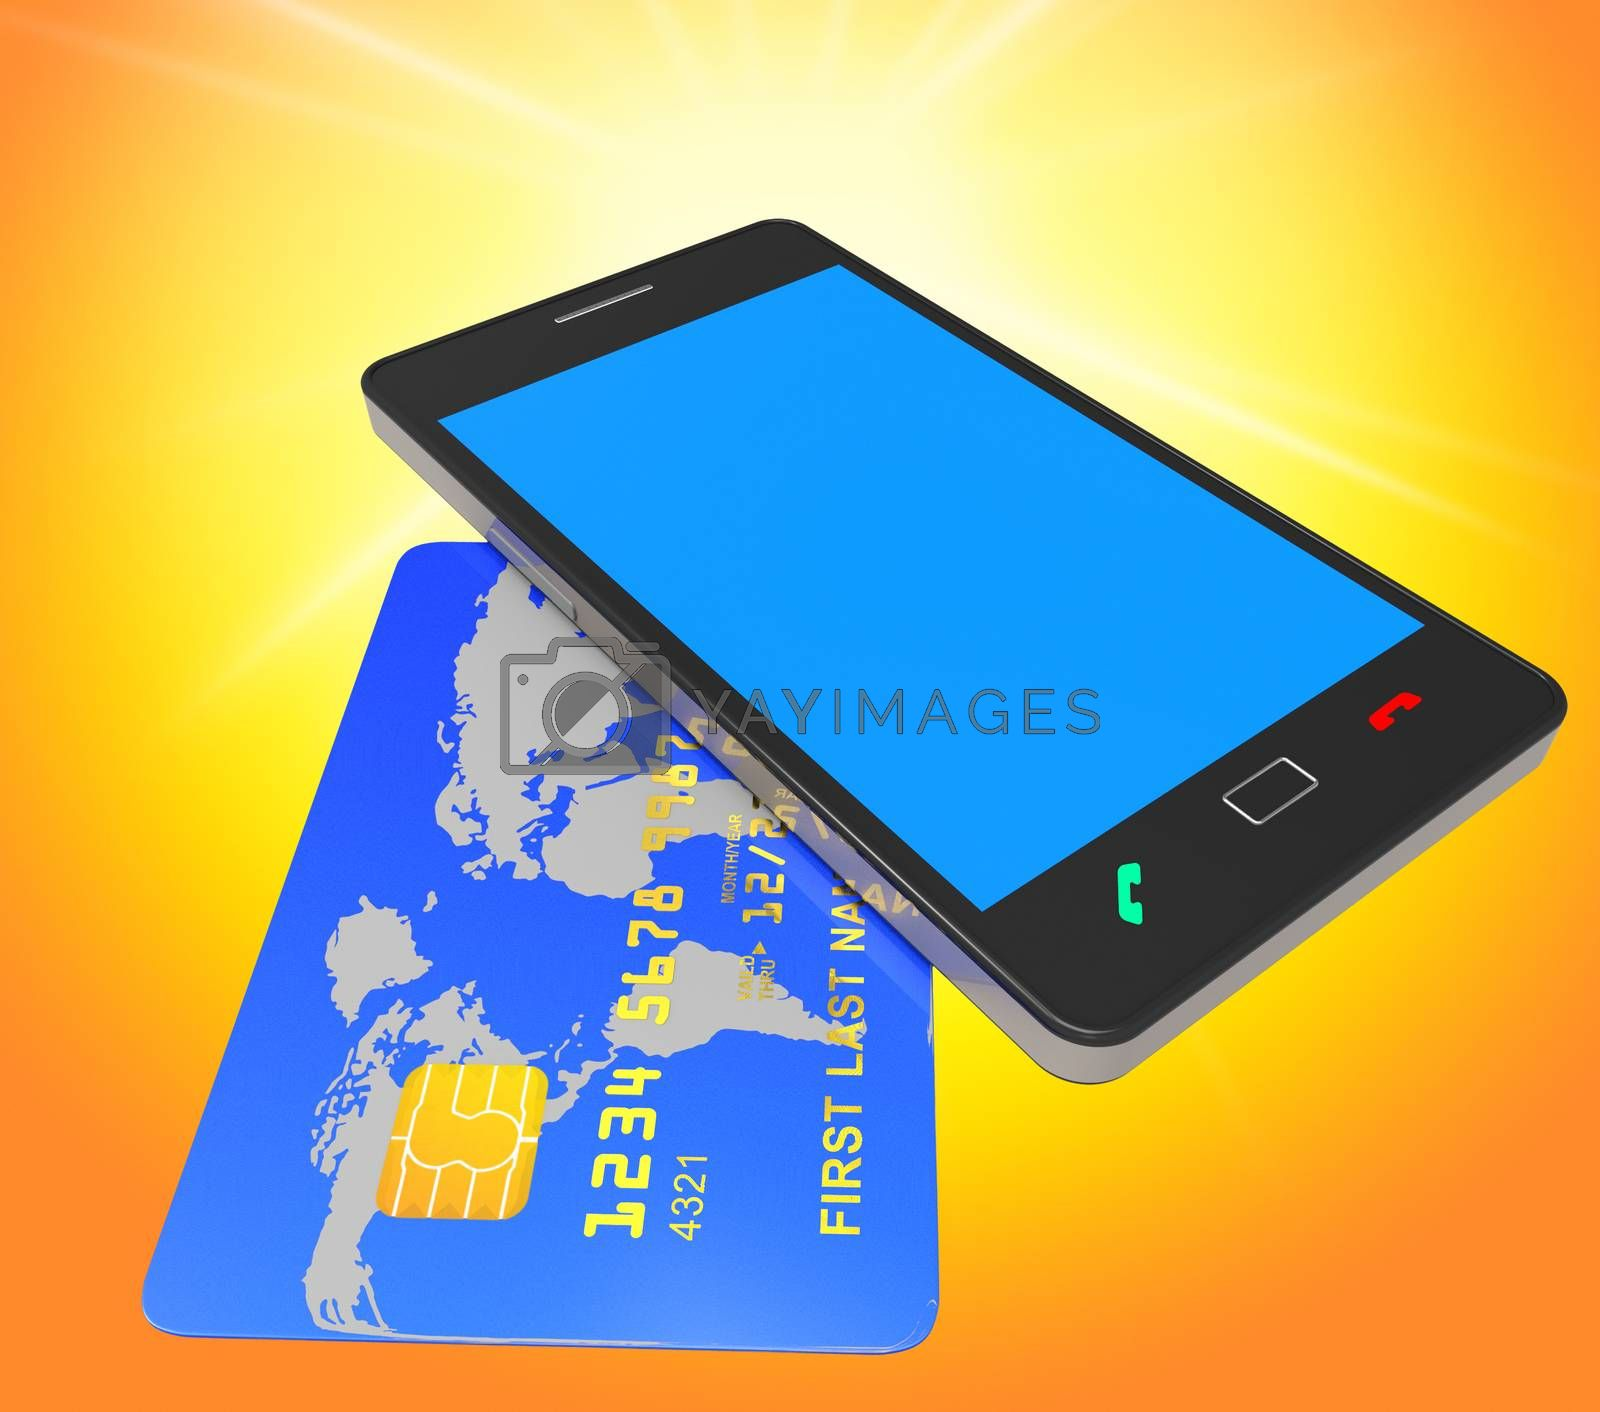 Credit Card Online Means World Wide Web And Banking by stuartmiles